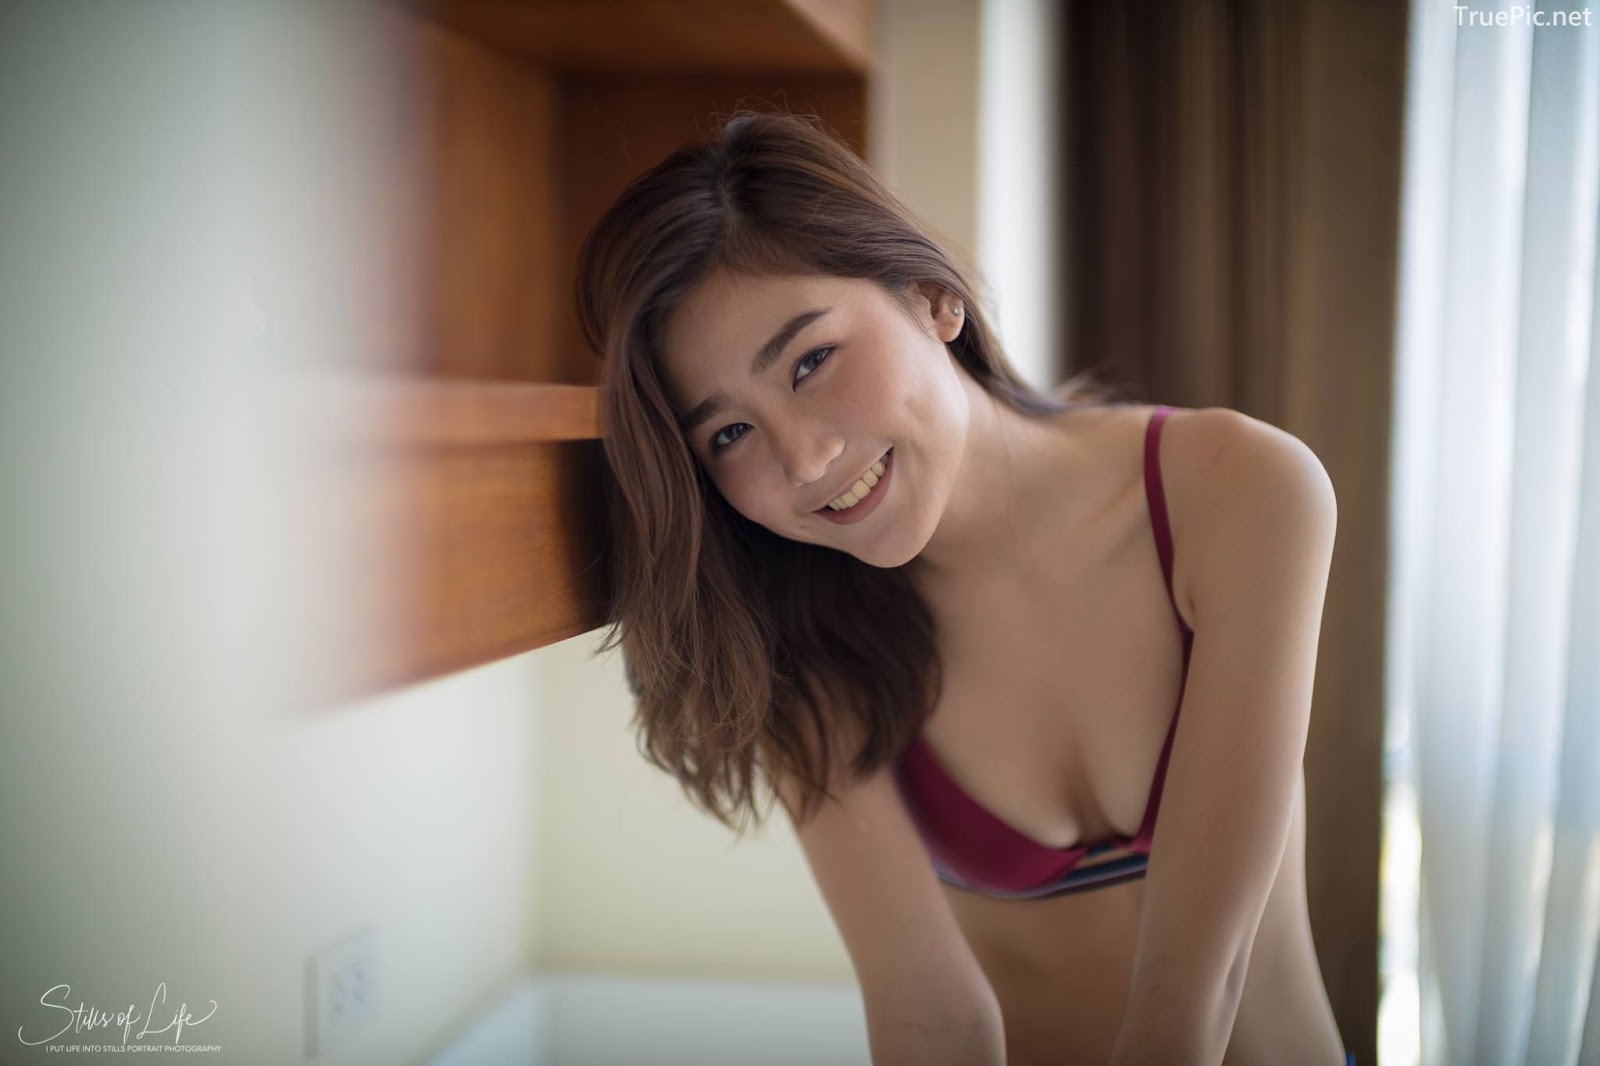 Thailand model - Pattaravadee Boonmeesup - In The Great Morning